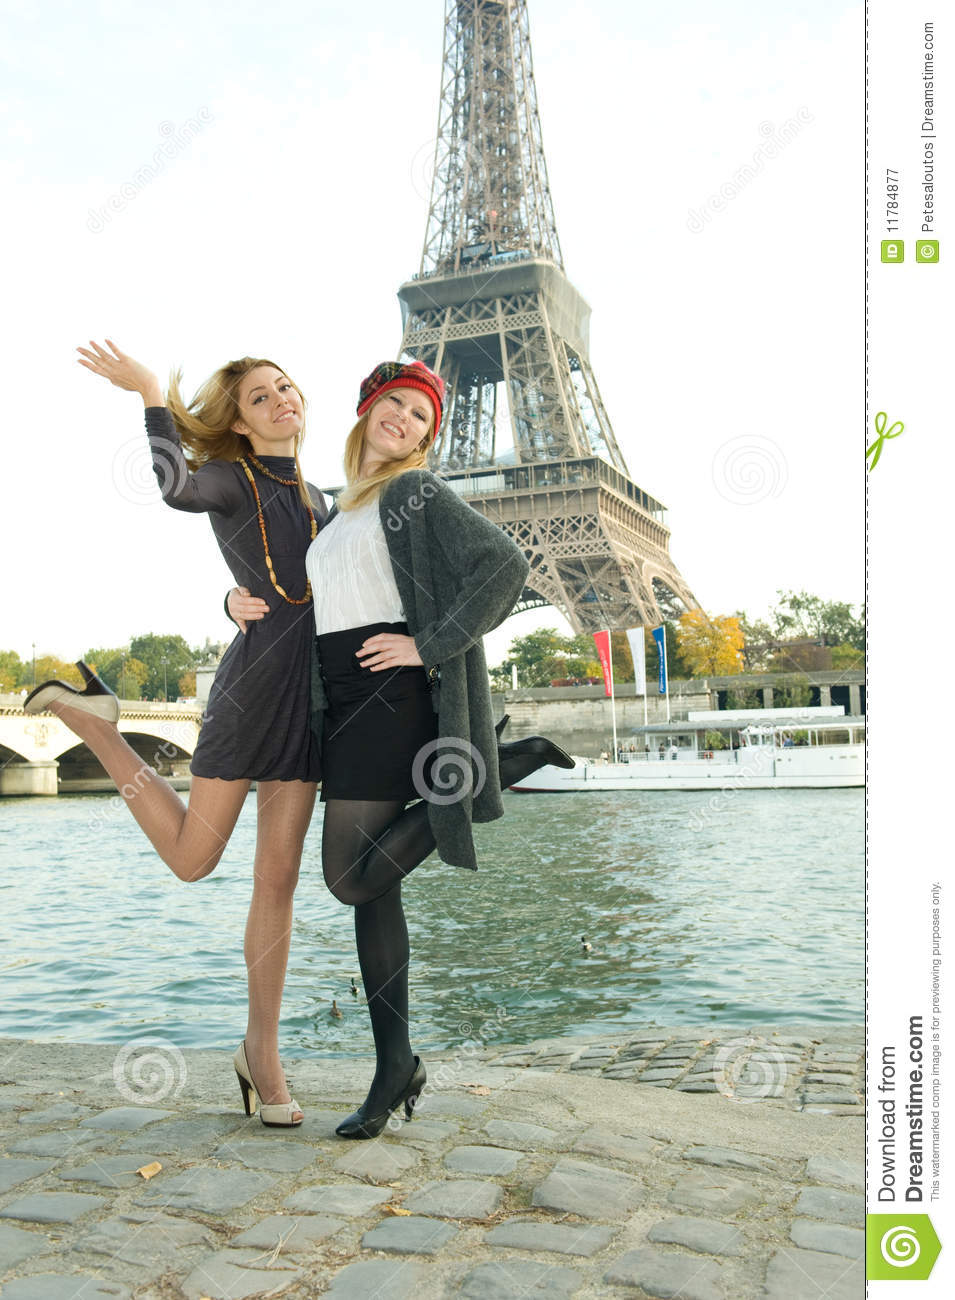 Girls In Paris Royalty Free Stock Photography - Image: 11784877